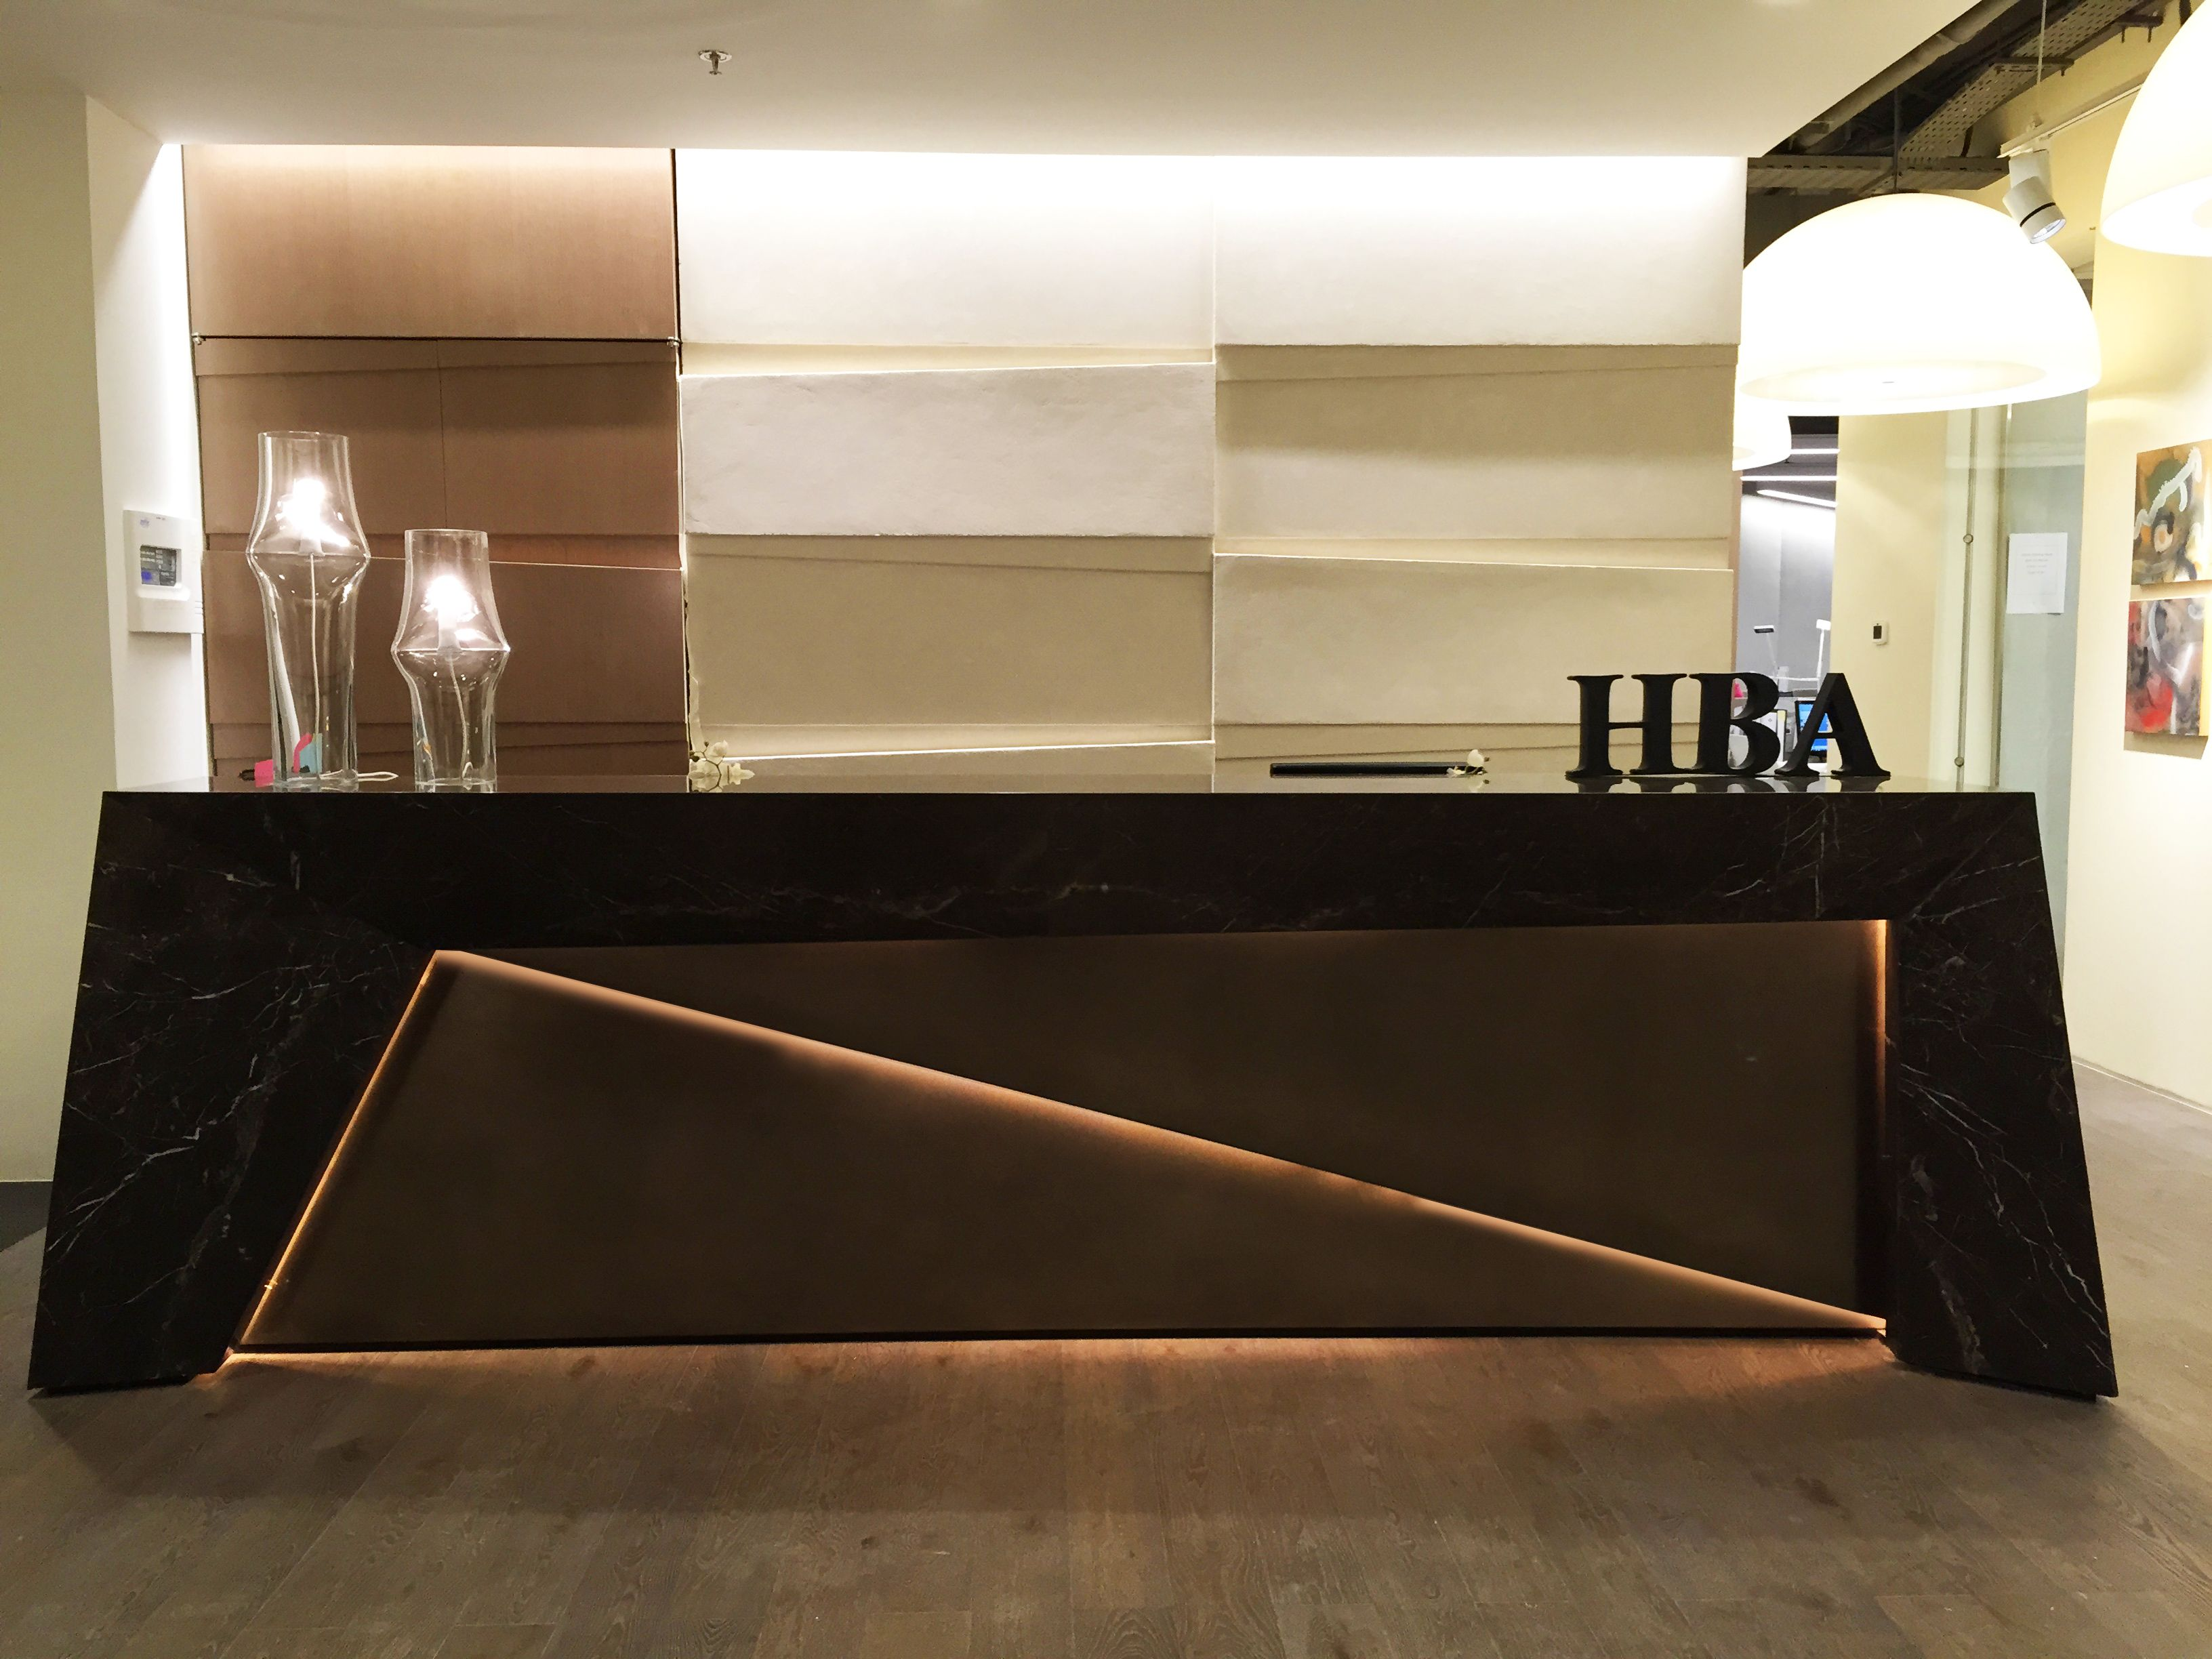 Office Wall Design Hba Dubai Office Reception Desk And Walls Design By Me